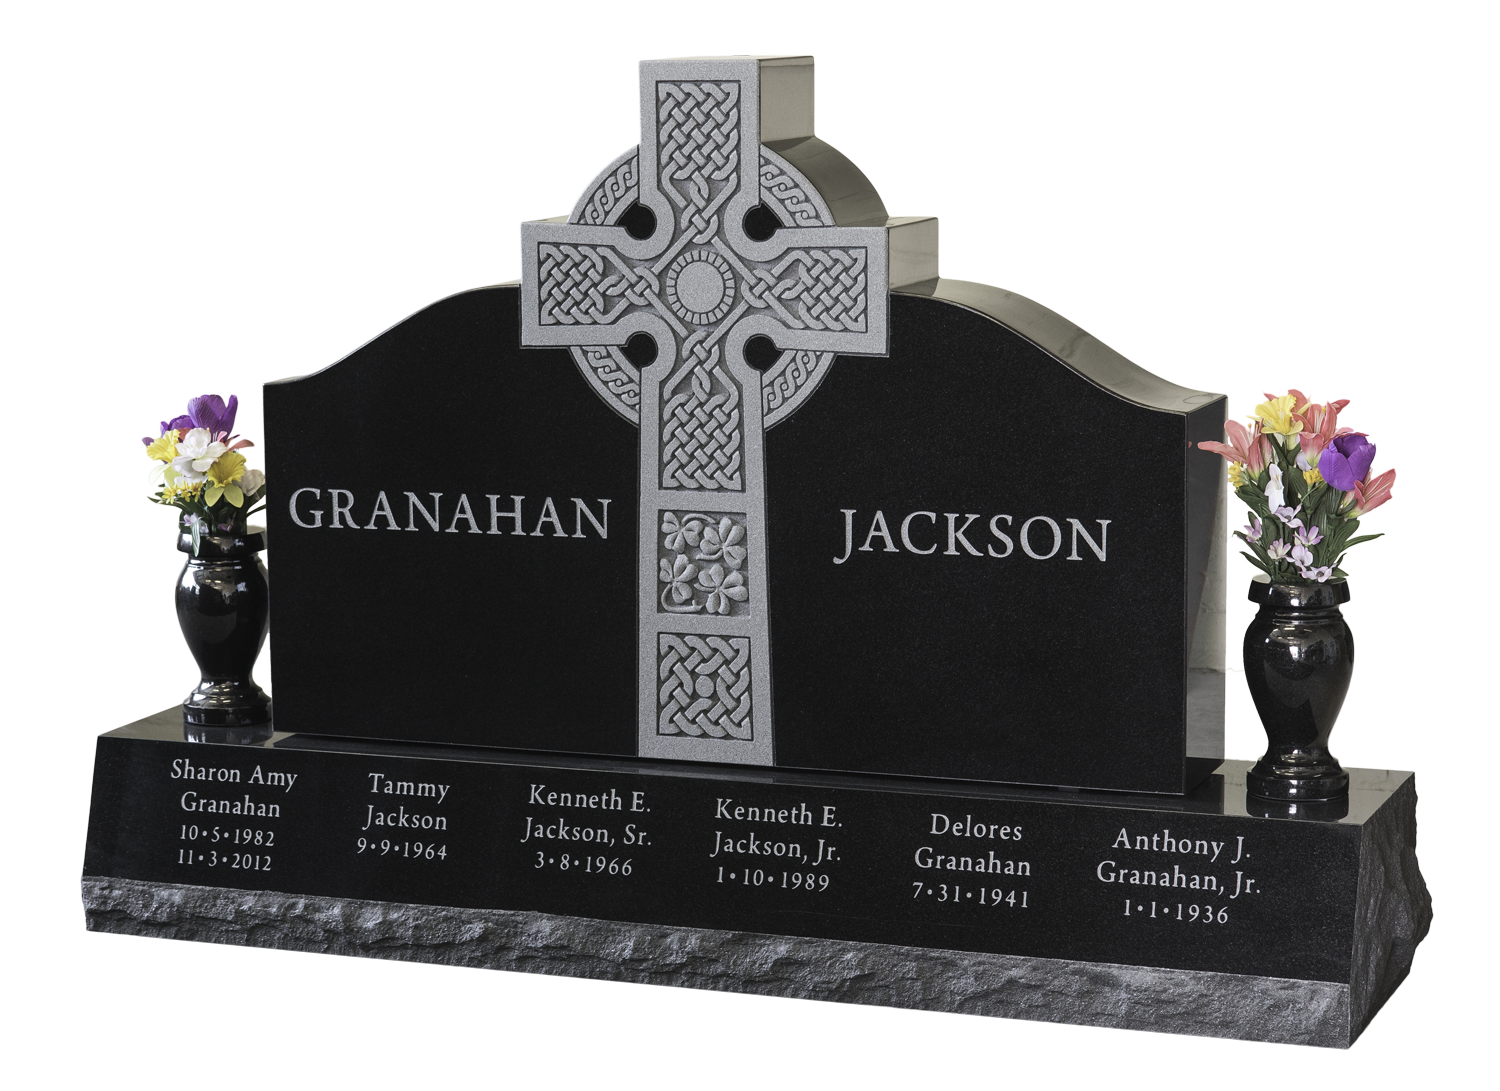 Granahan-Jackson Monument.png